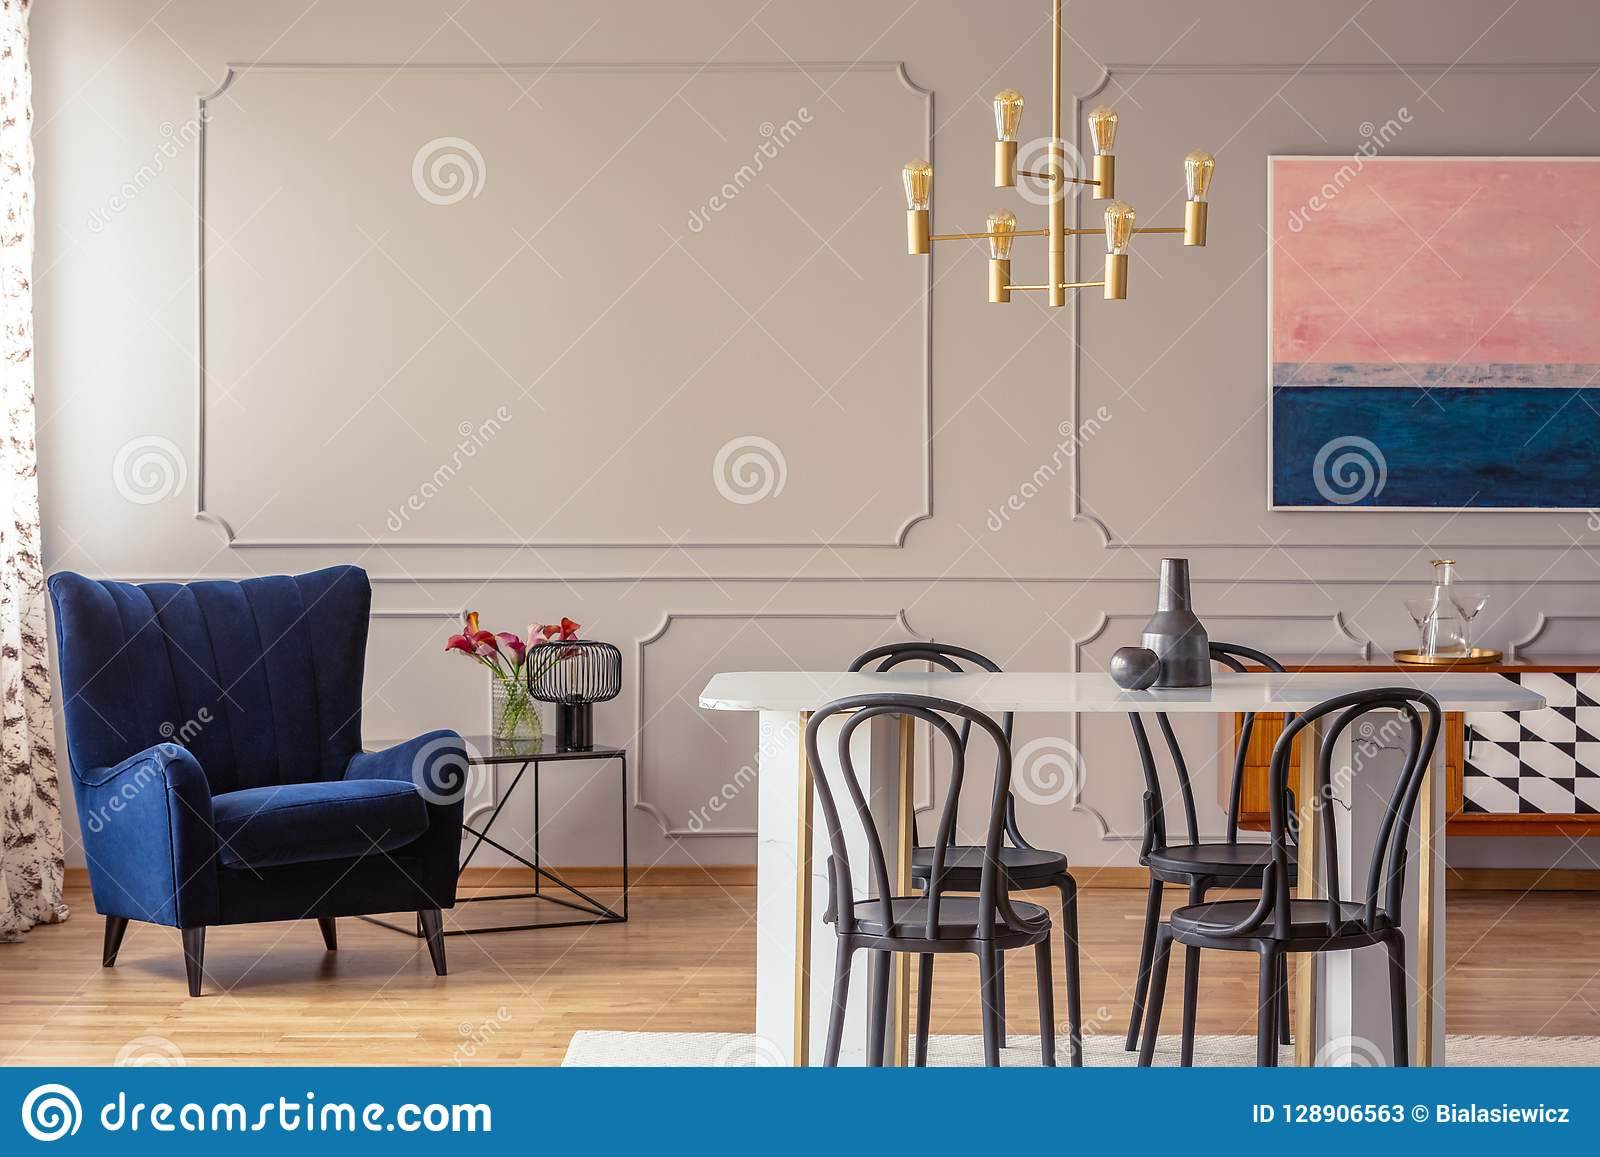 Dark Blue Armchair In A Dining Room Interior With A Table Chairs